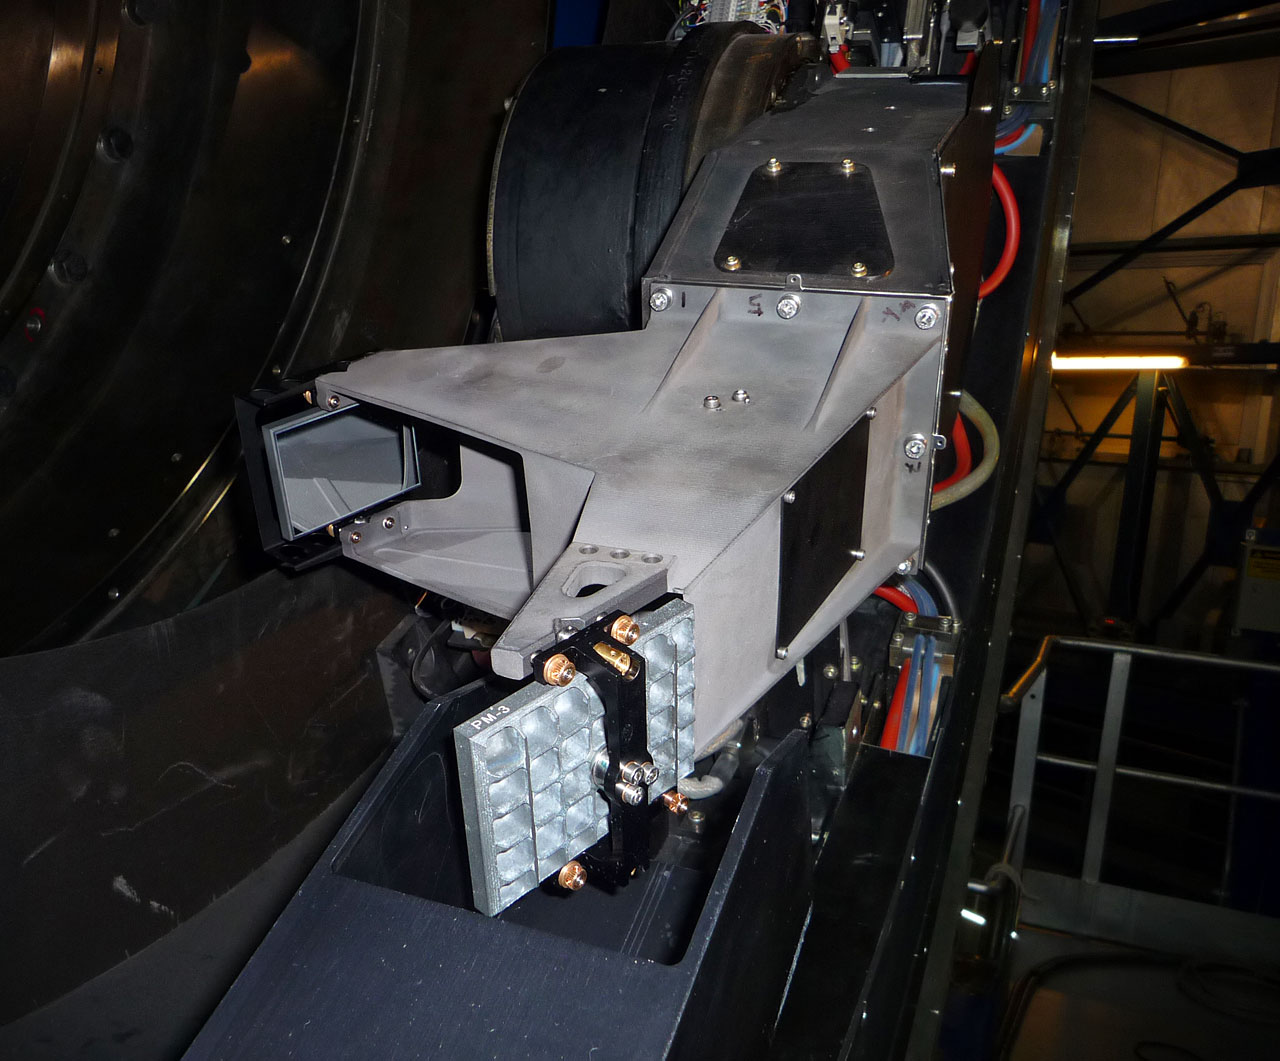 New VLT component created using 3D printing